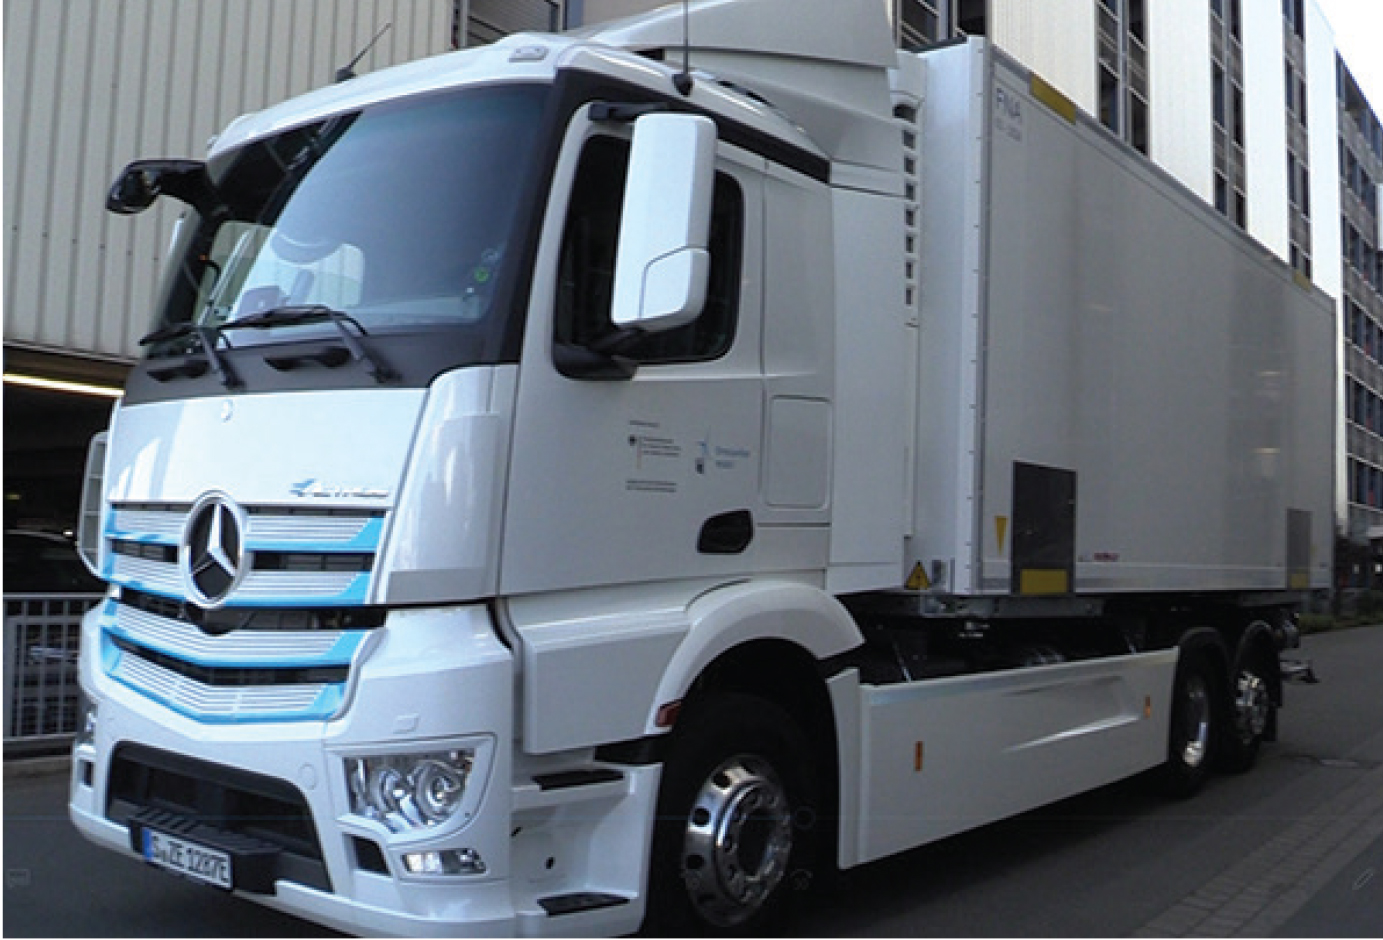 Highlights from IAA Commercial Vehicles 2018 international